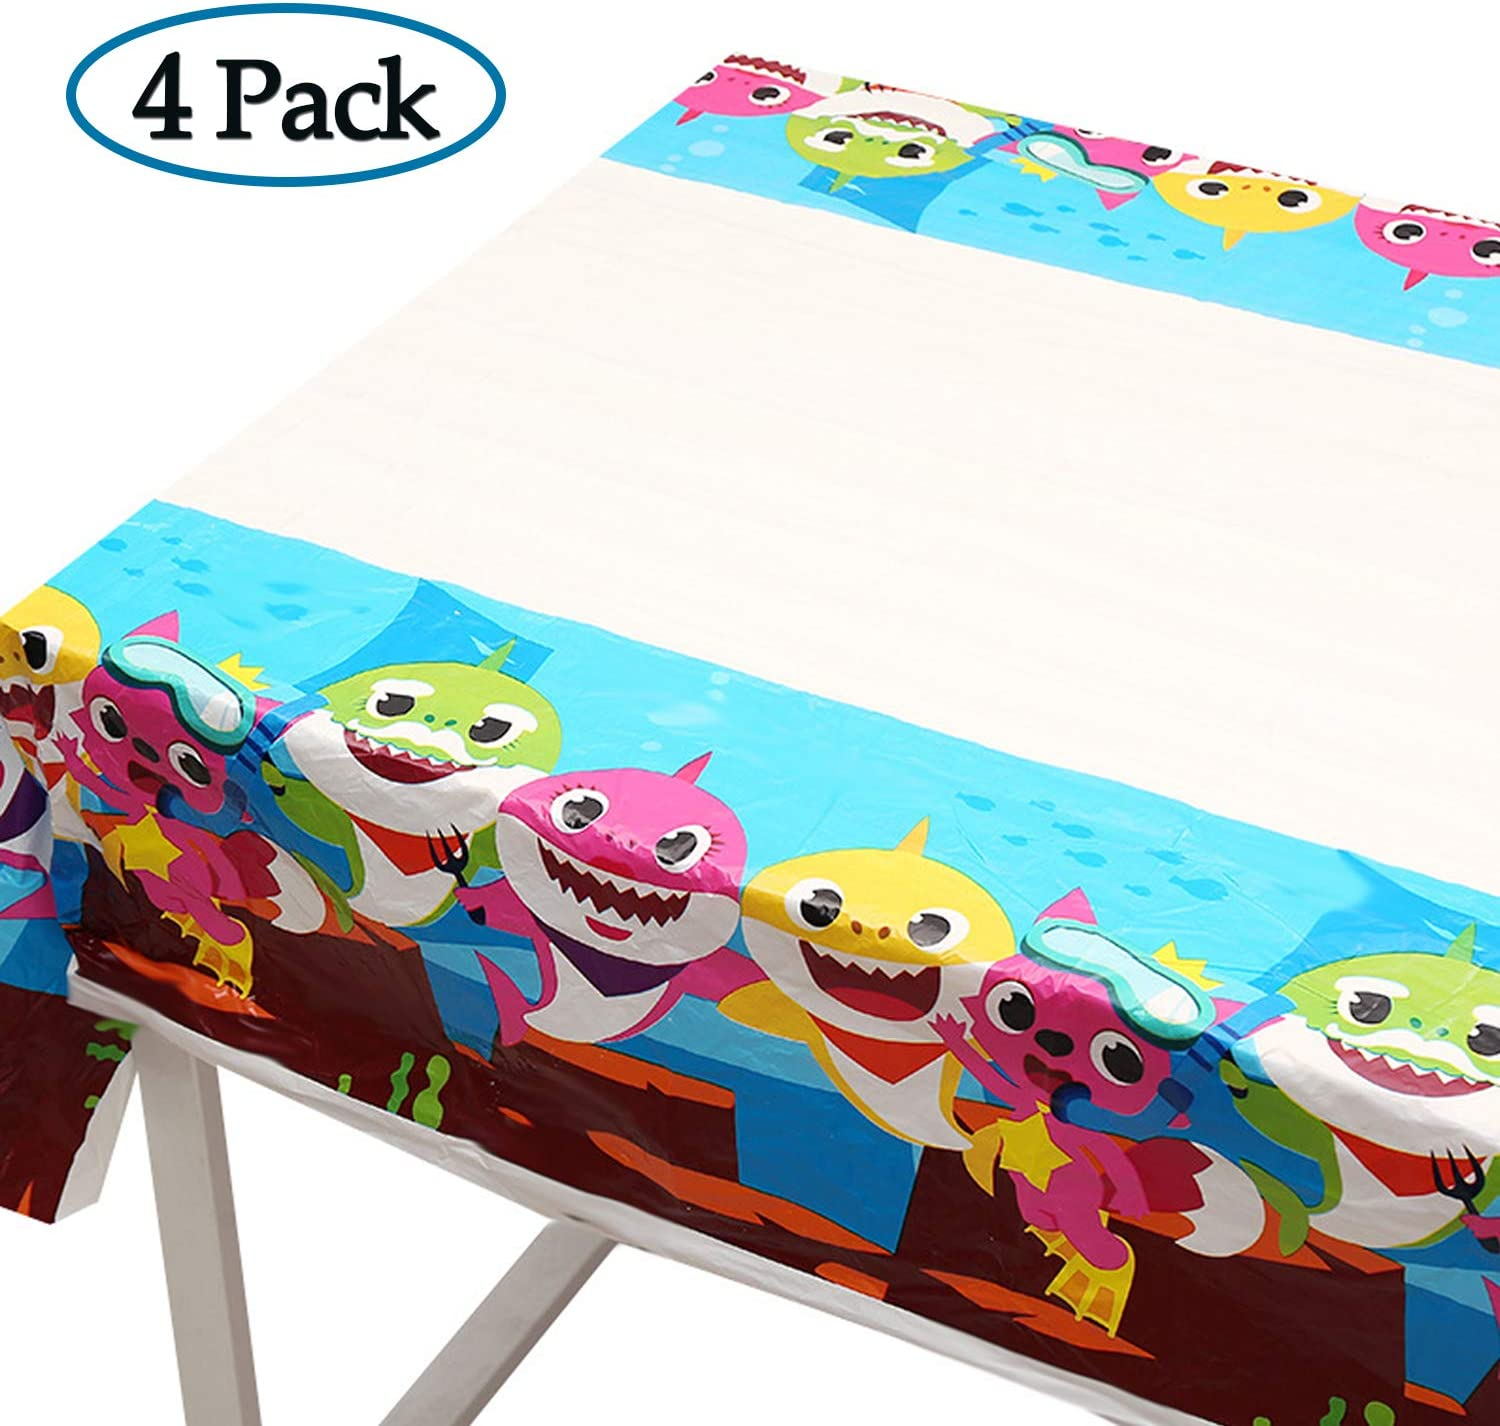 BAODAN 4 Pack Baby Shark Table Cloth, 70 x 42 Inch Table Covers for Baby Shower Birthday Party Decoration Supplies